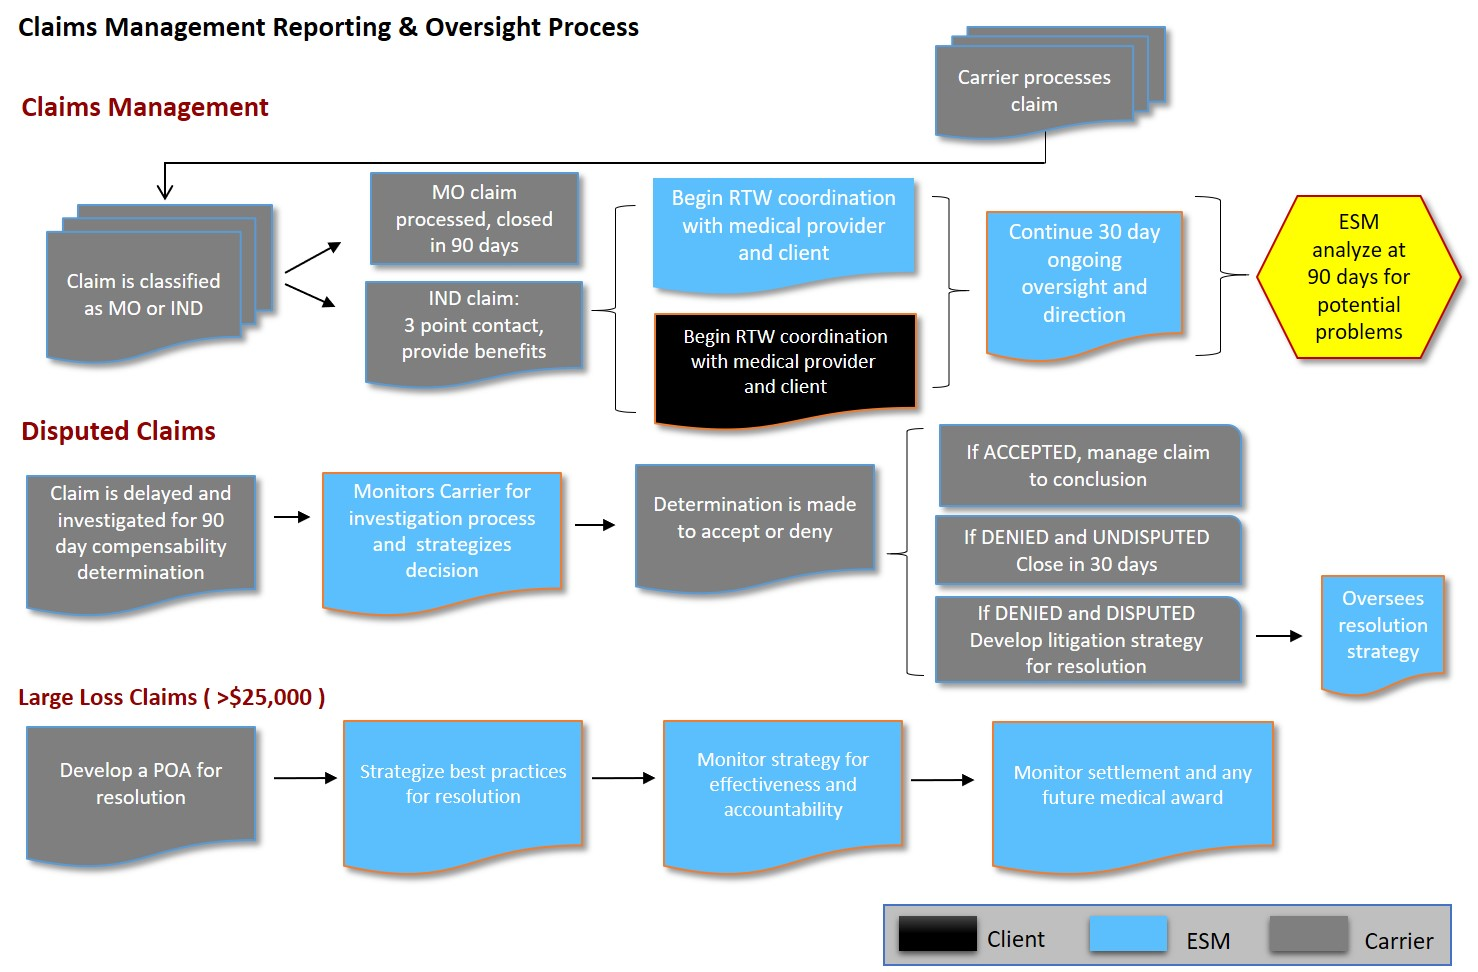 Claims Mgmt Reporting & Oversight.jpg